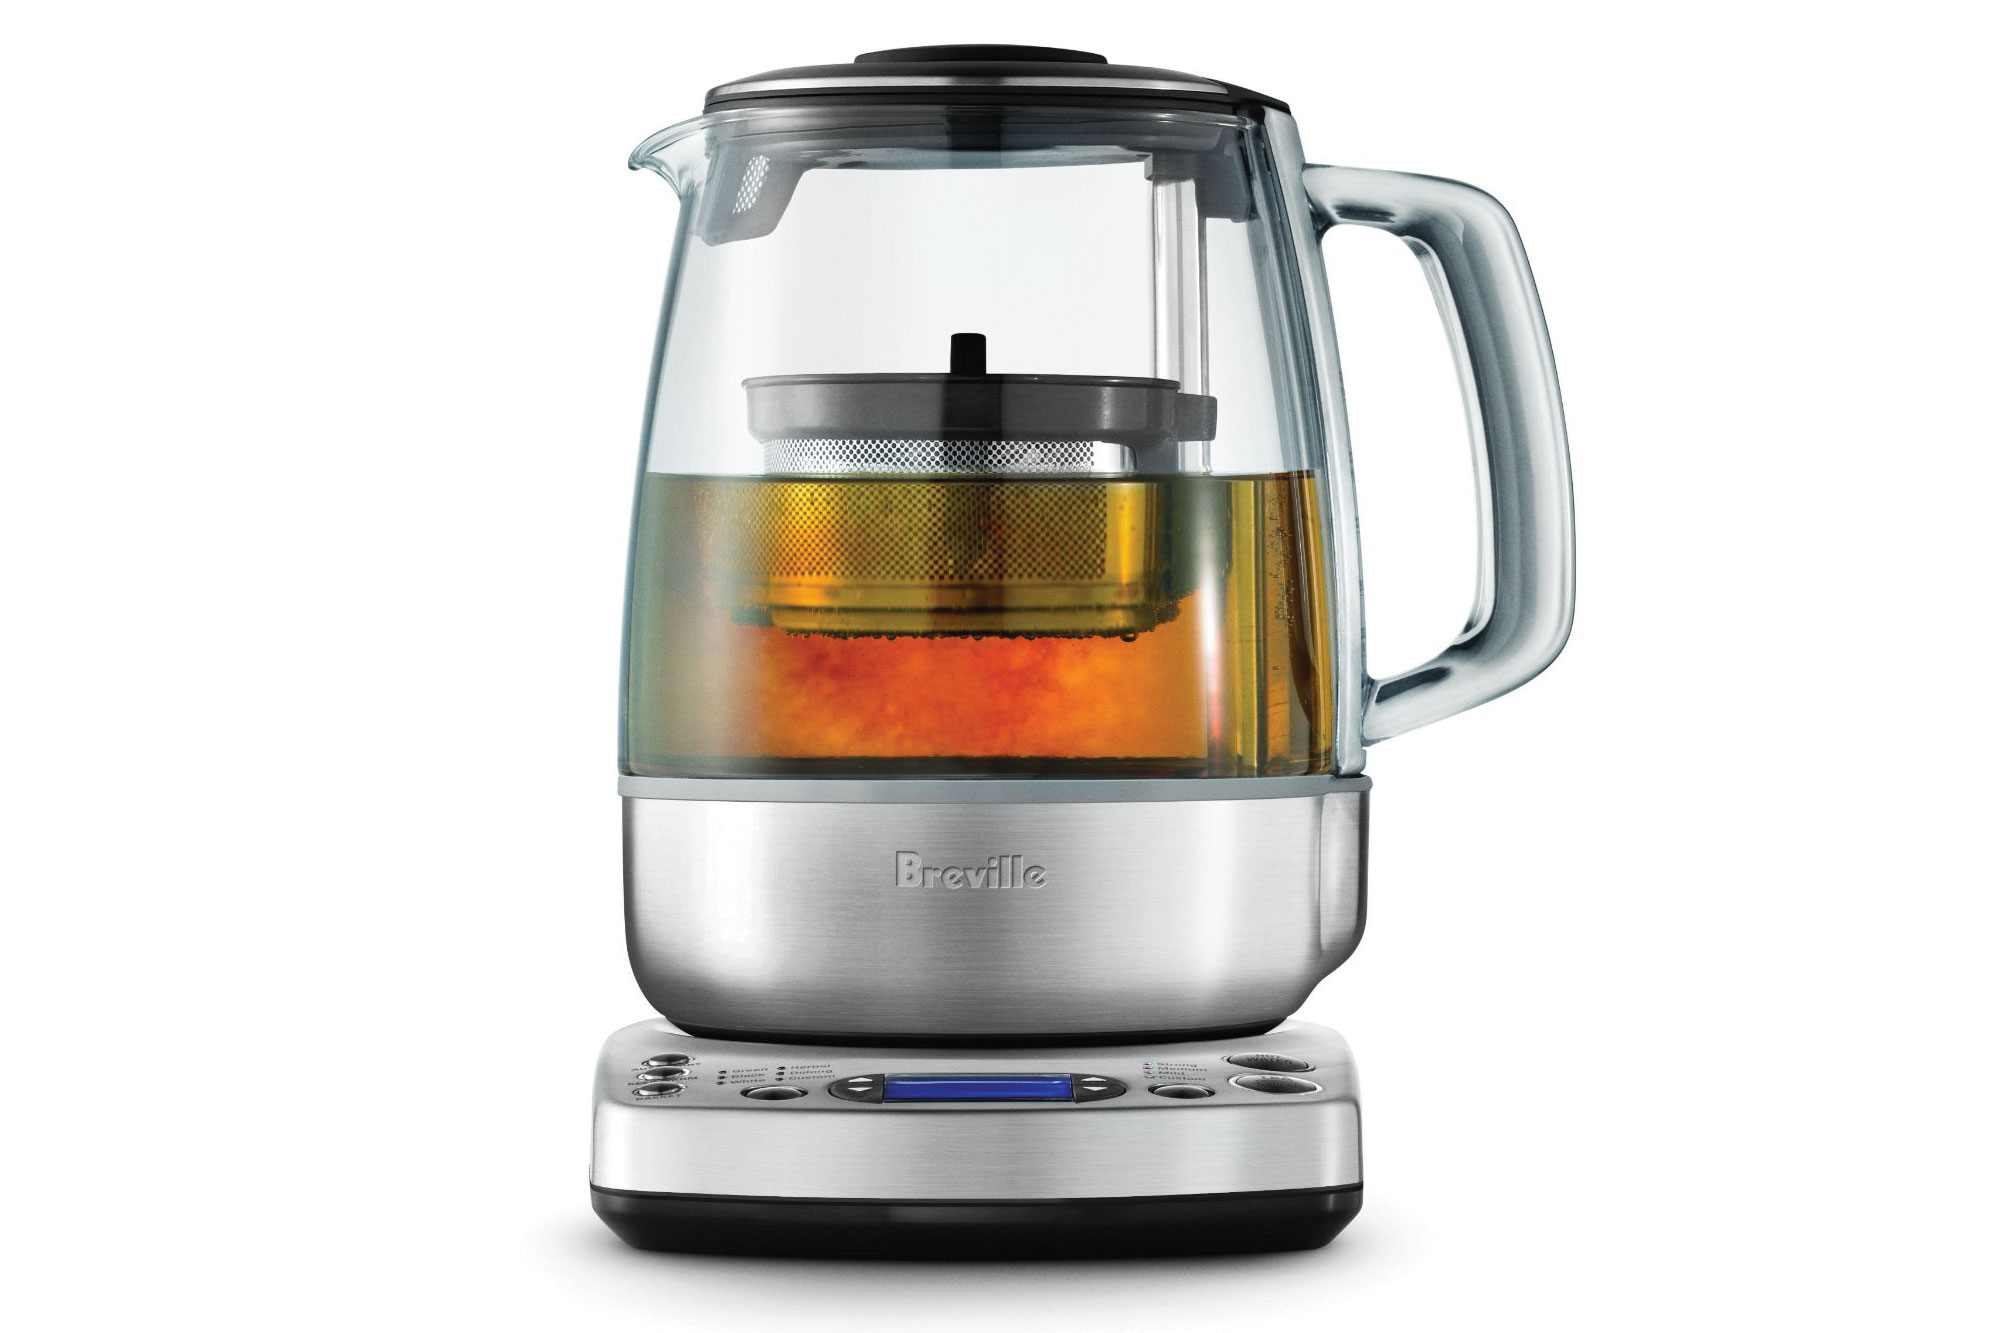 Breville One Touch Electric Tea Maker Cutlery And More